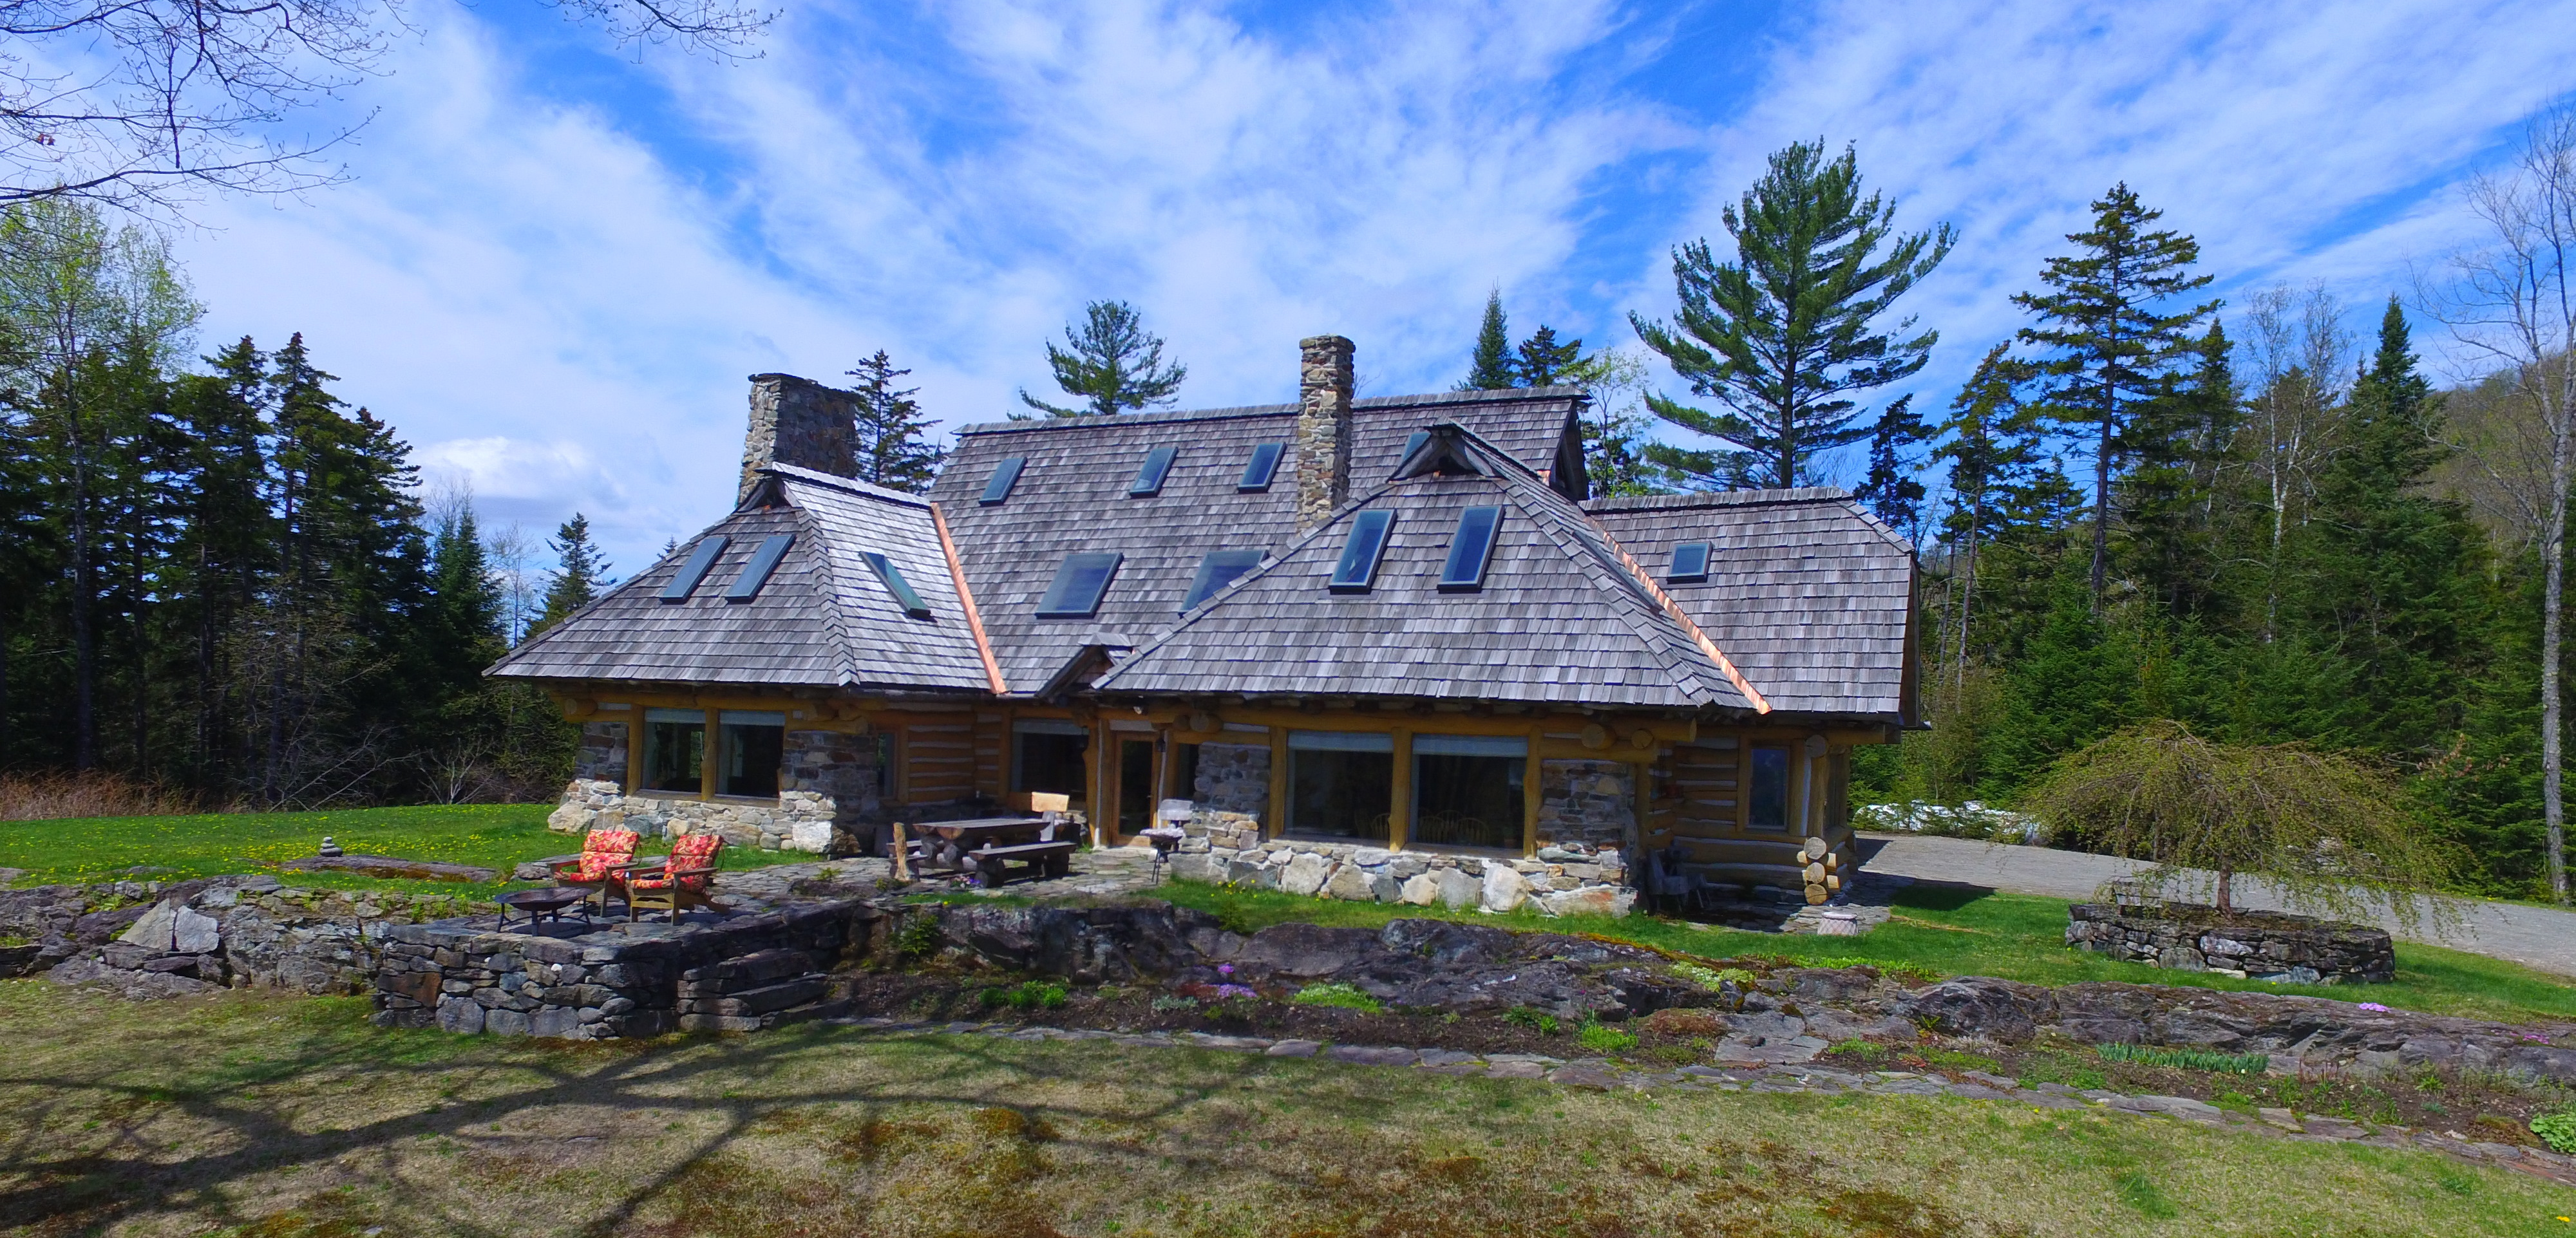 Single Family Home for Sale at Spectacular Mountain Top Home 1285 Manns Hill Rd Littleton, New Hampshire, 03561 United States